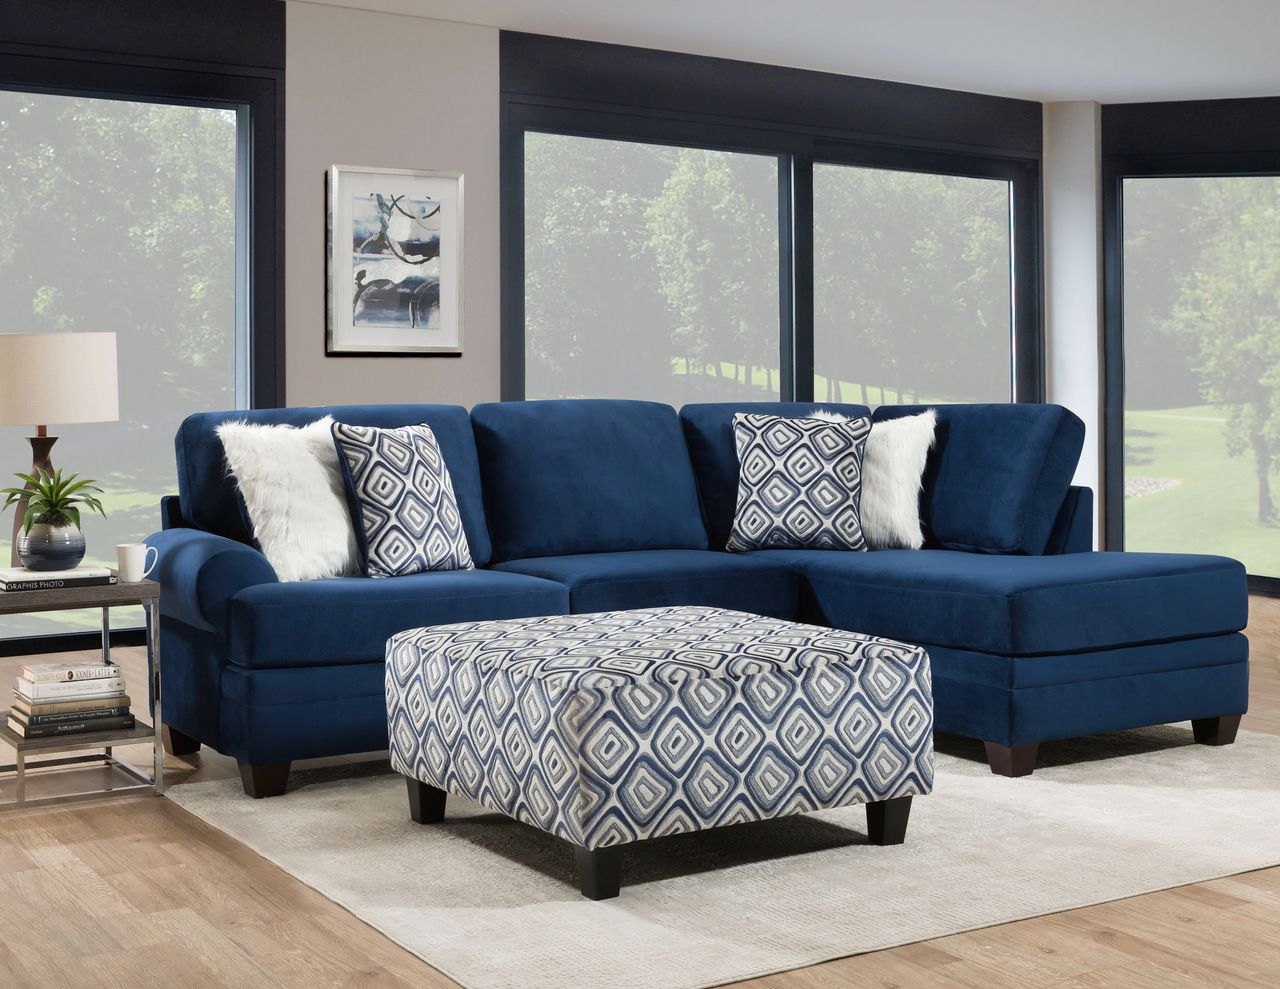 Albany Groovy Navy Sectional Sofa Blue Sofas Living Room Navy Sofa Living Room Blue Living Room Decor